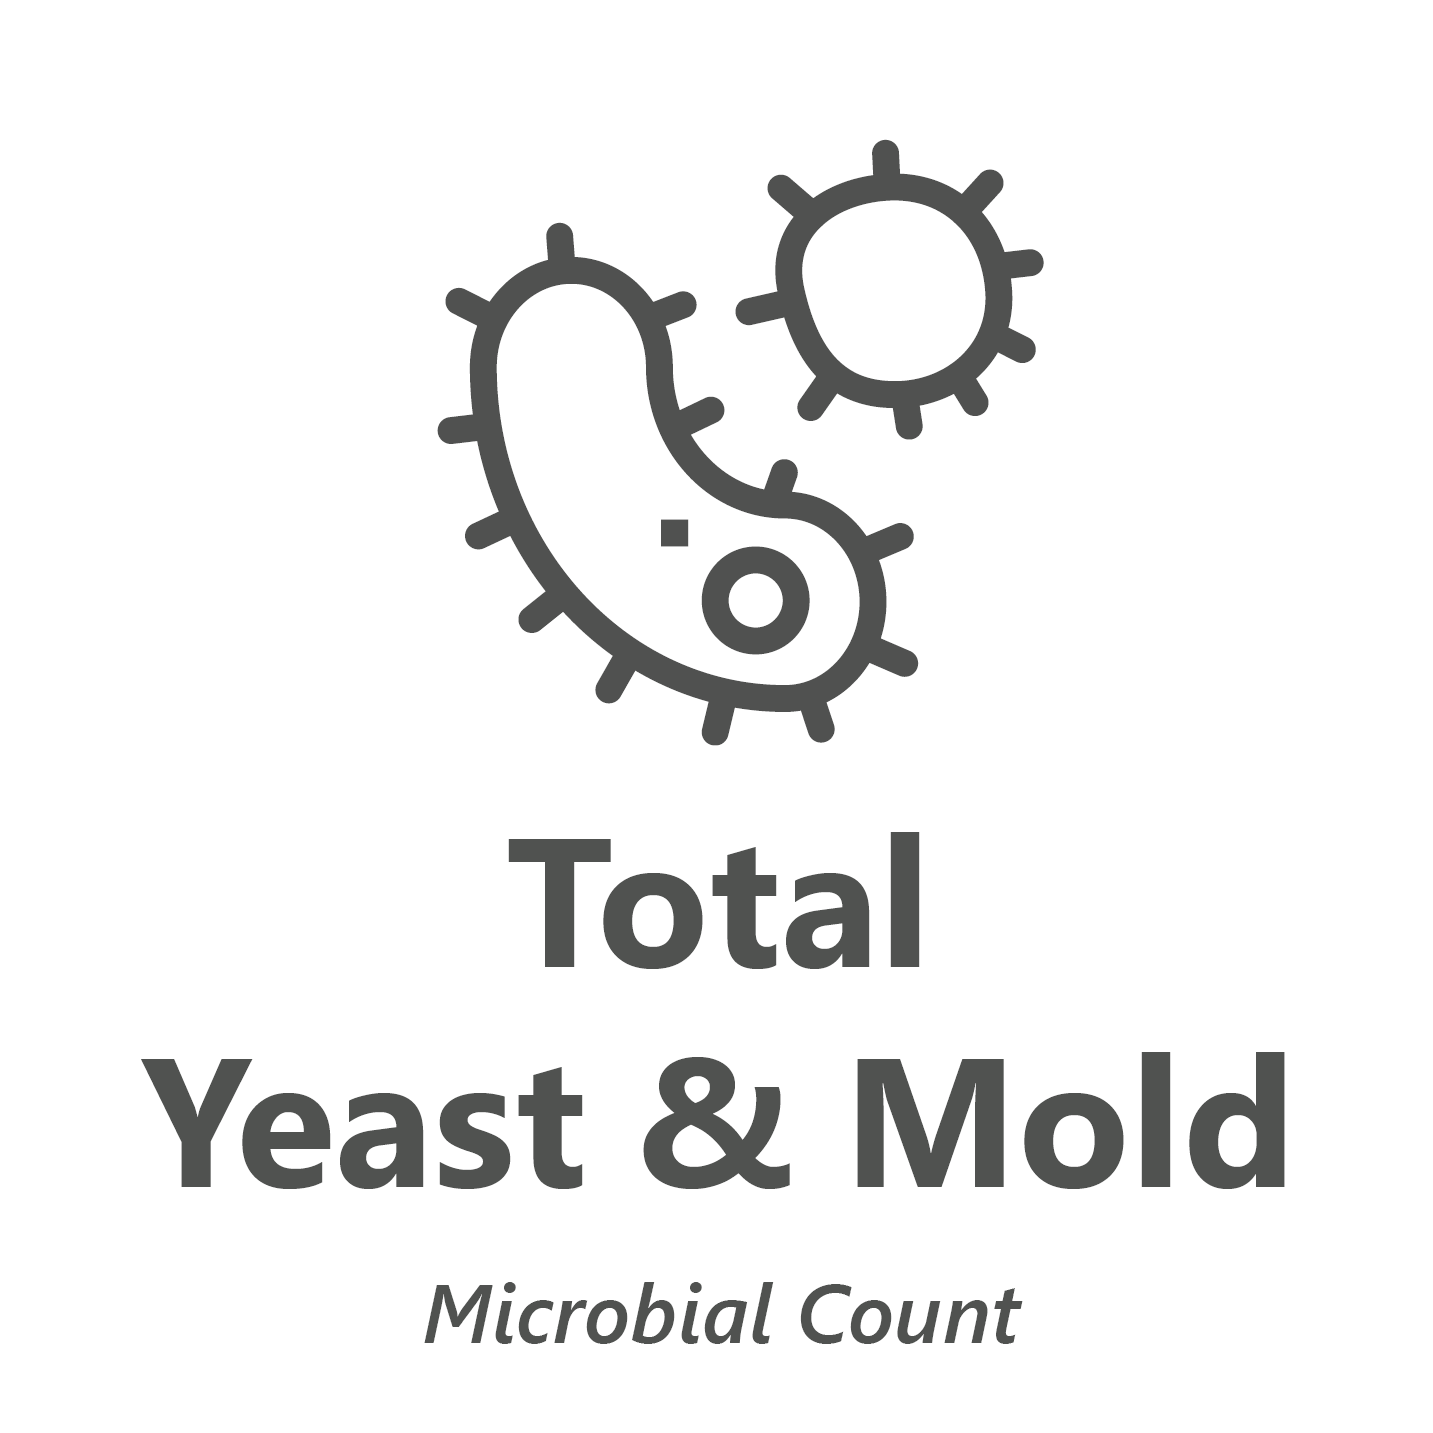 Web store icon for Total Yeast & Mold microbiology test.